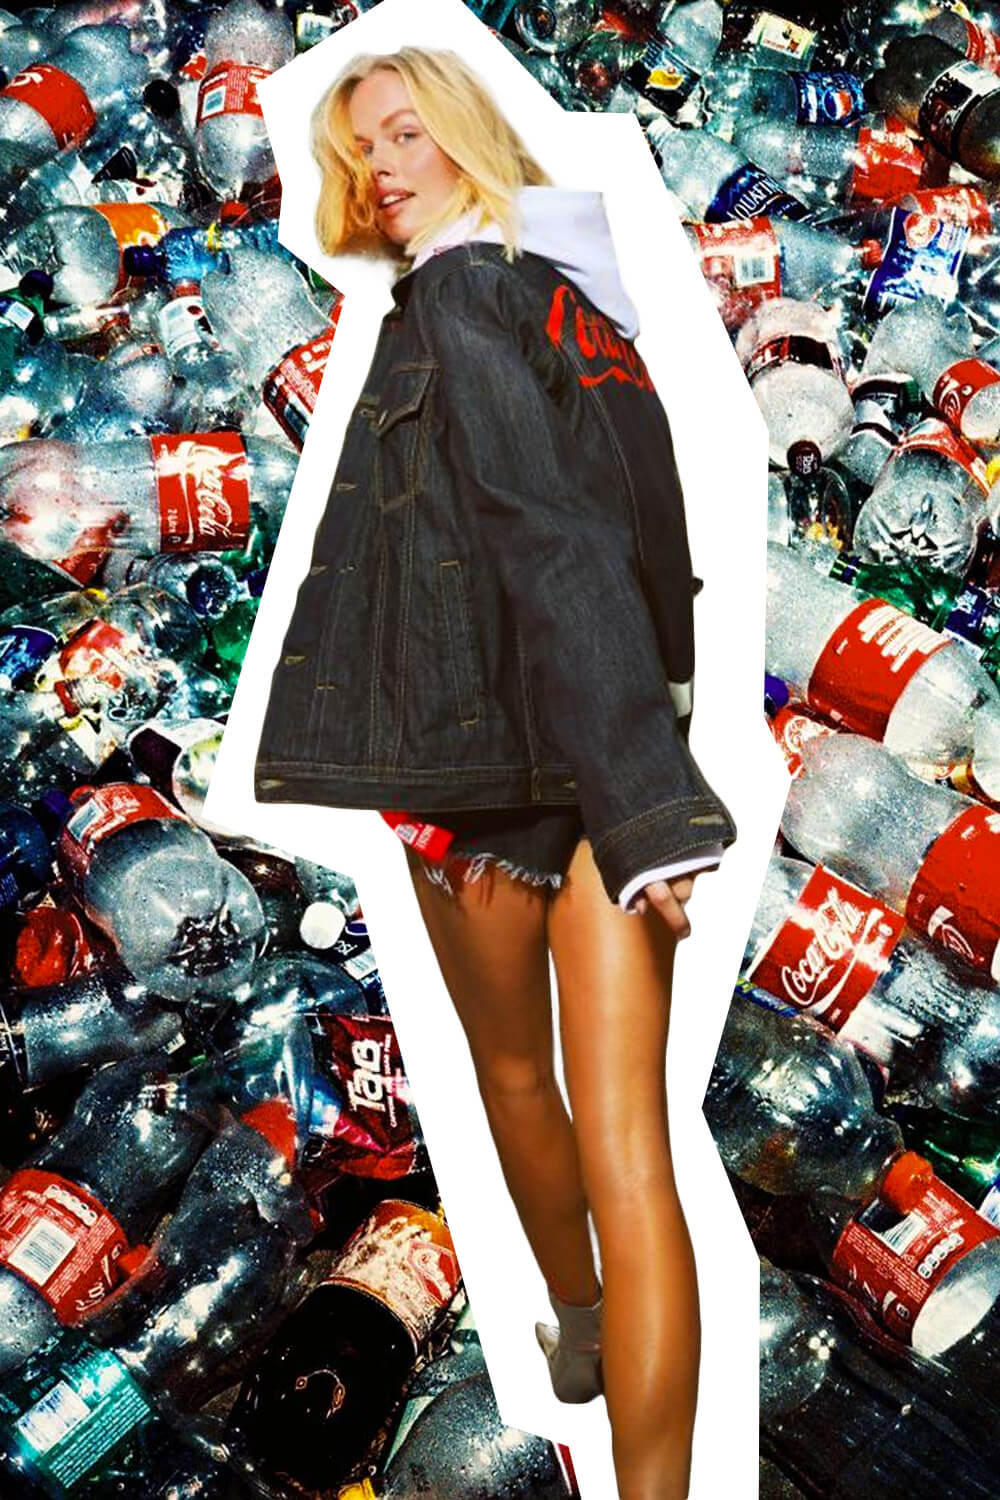 Recycling coca cola plastic bottles